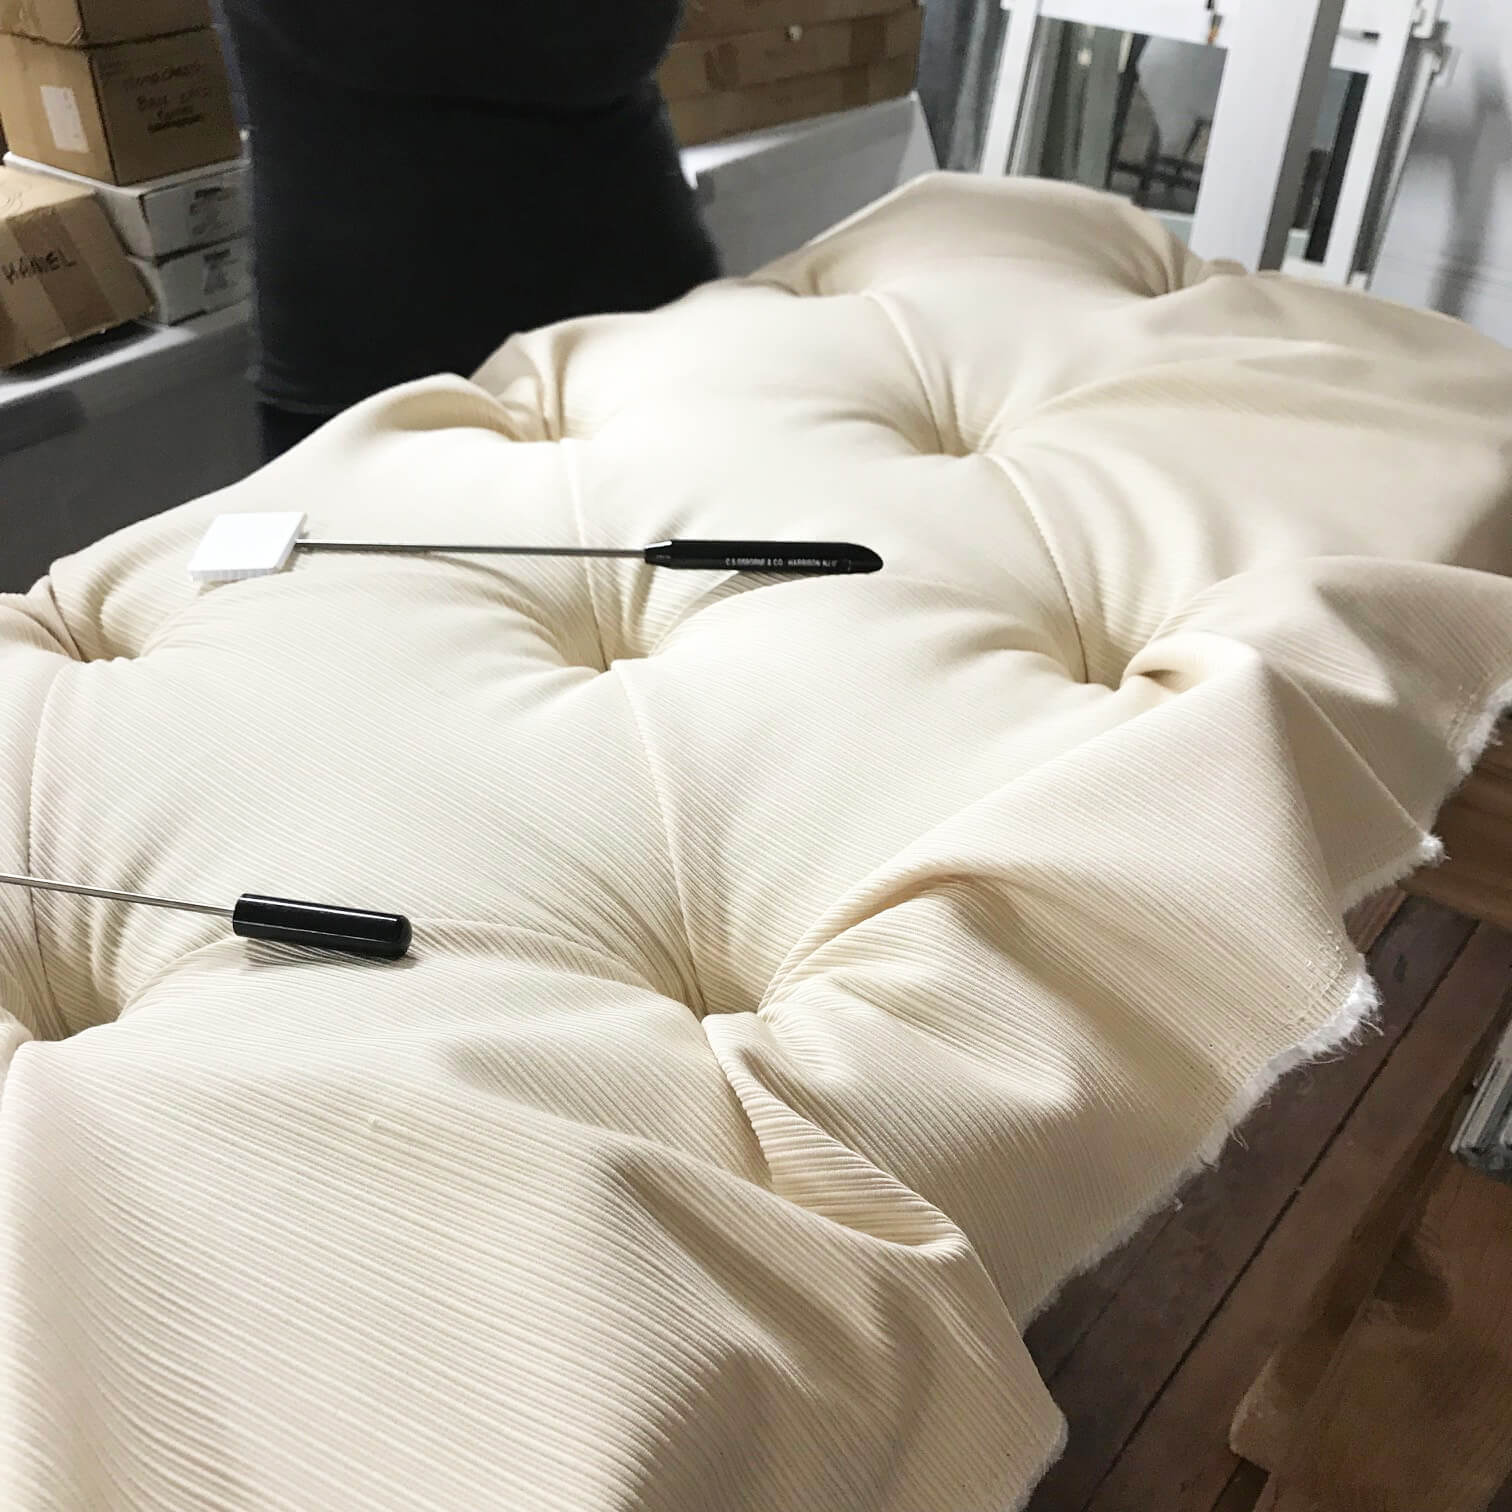 Tufting upholstery is amazing